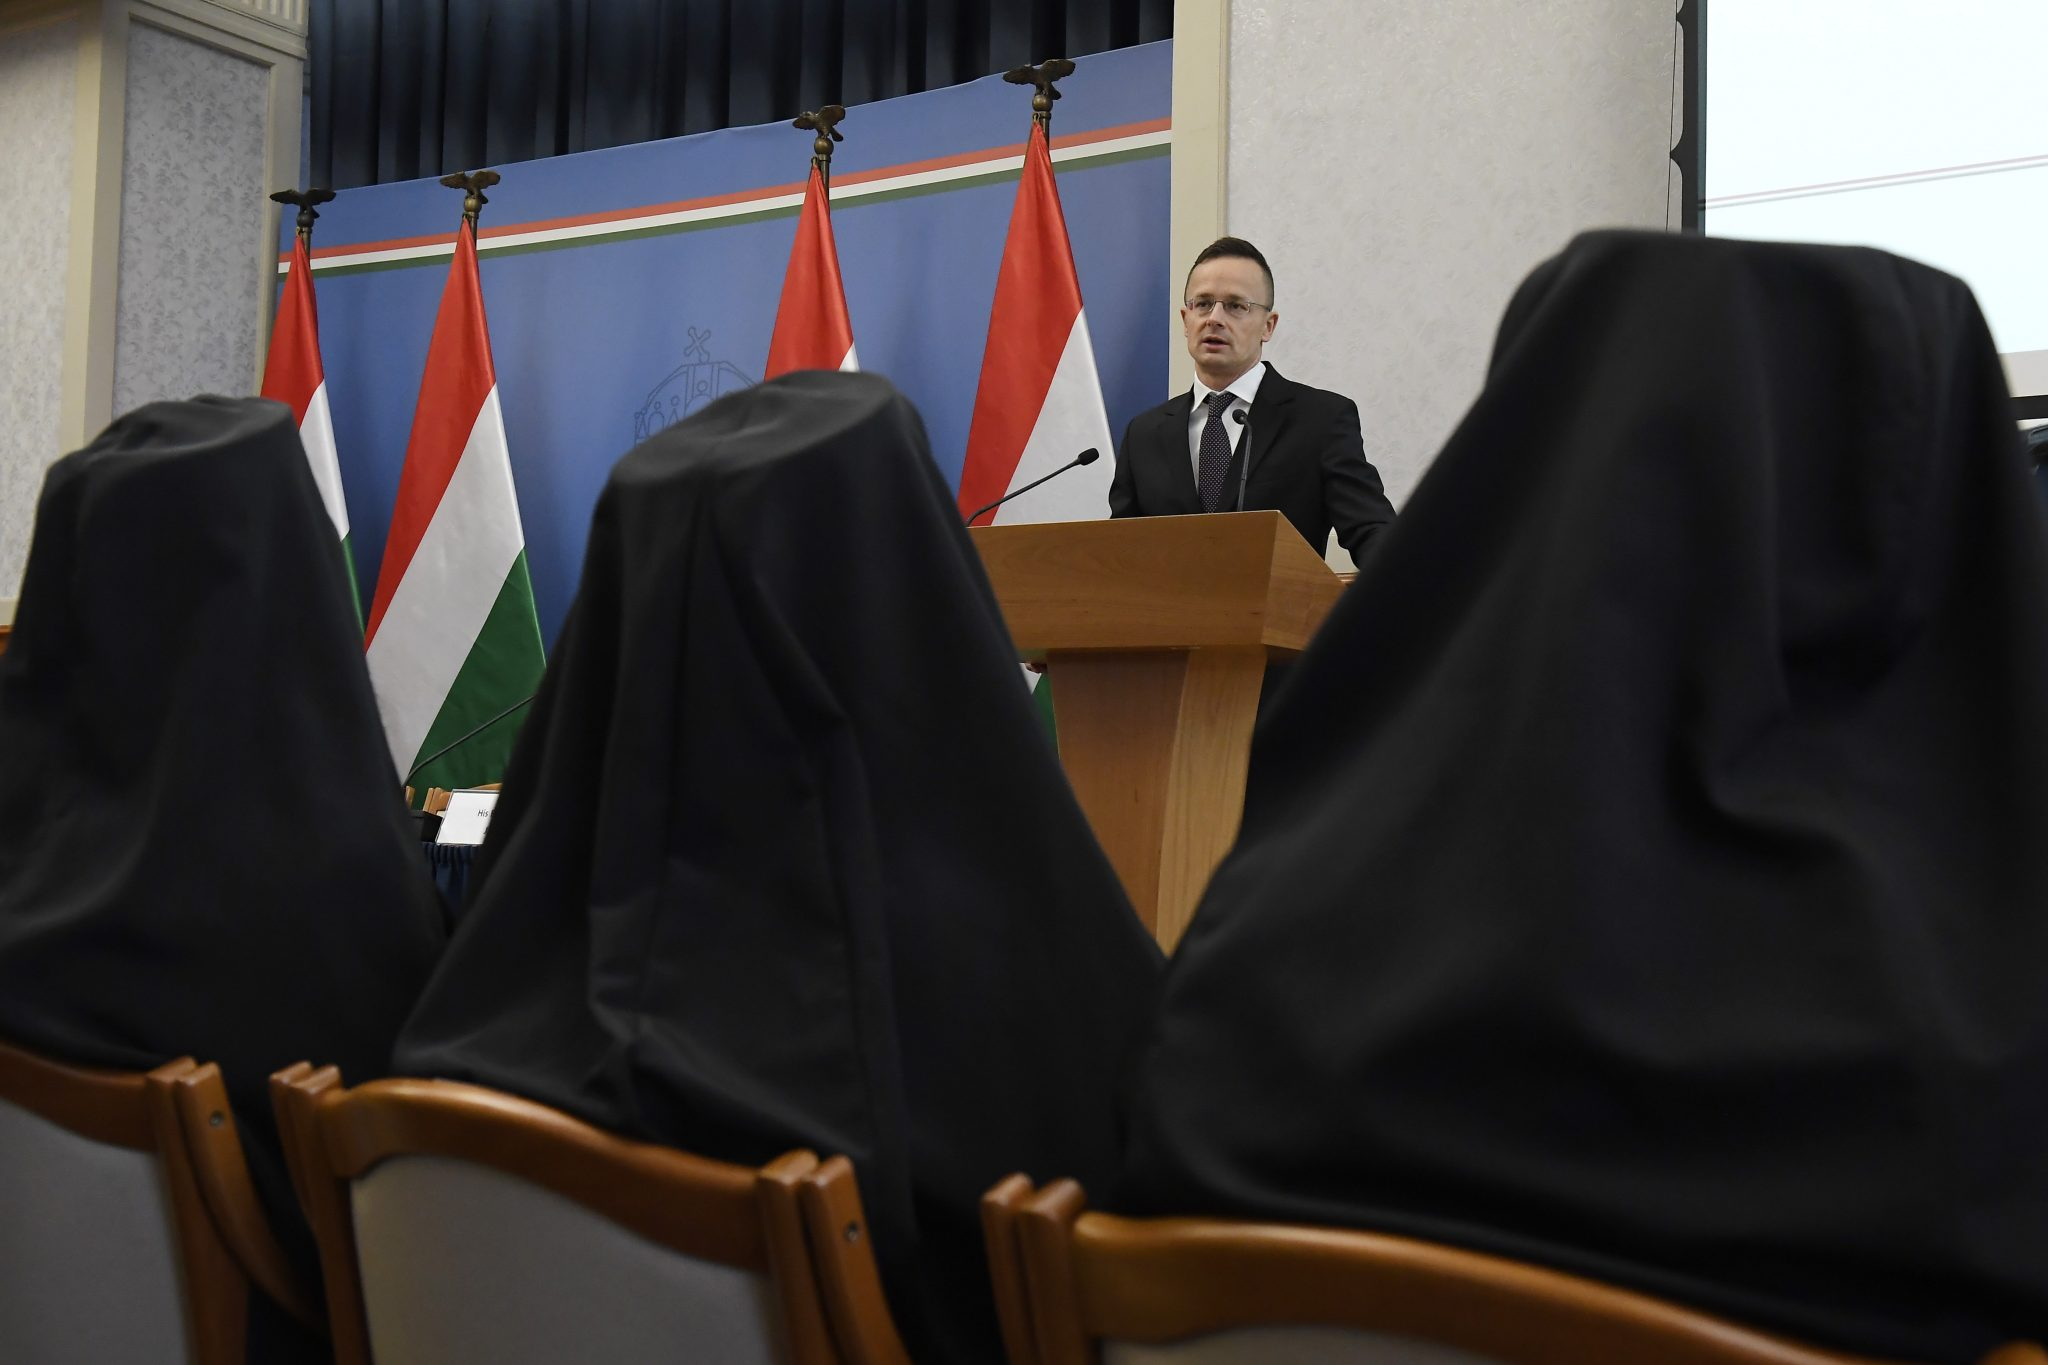 Foreign Minister: Hungary Assumes Responsibility for All Christian Communities post's picture